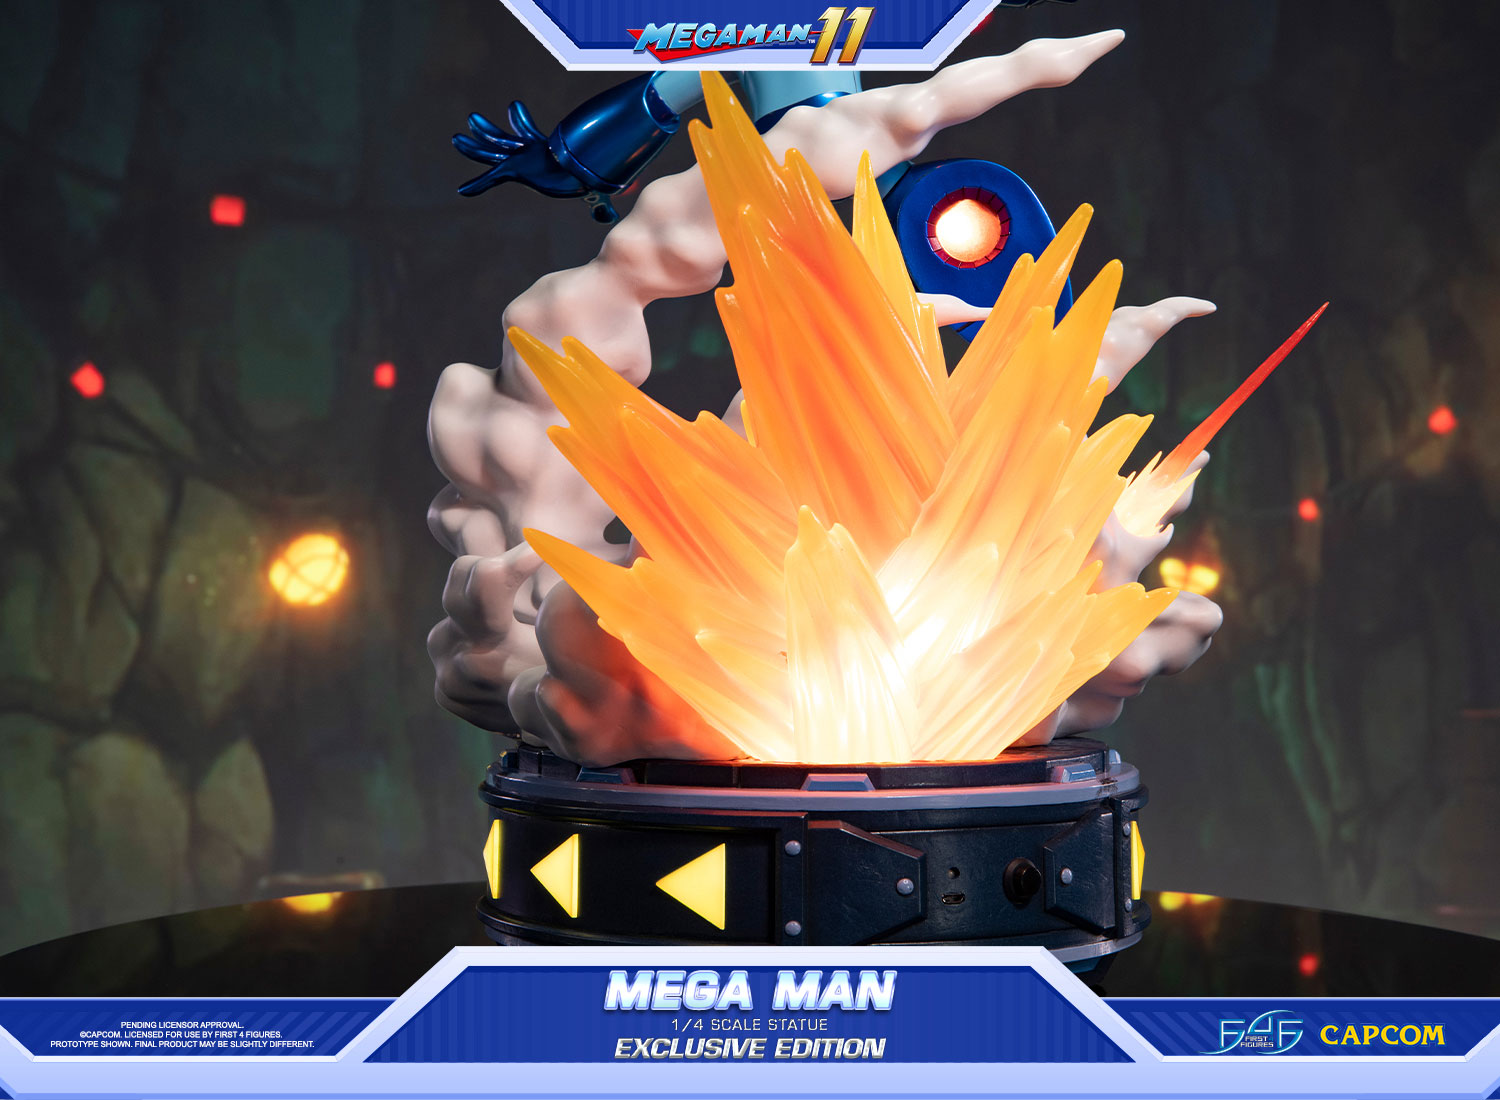 Mega Man (Exclusive Edition)